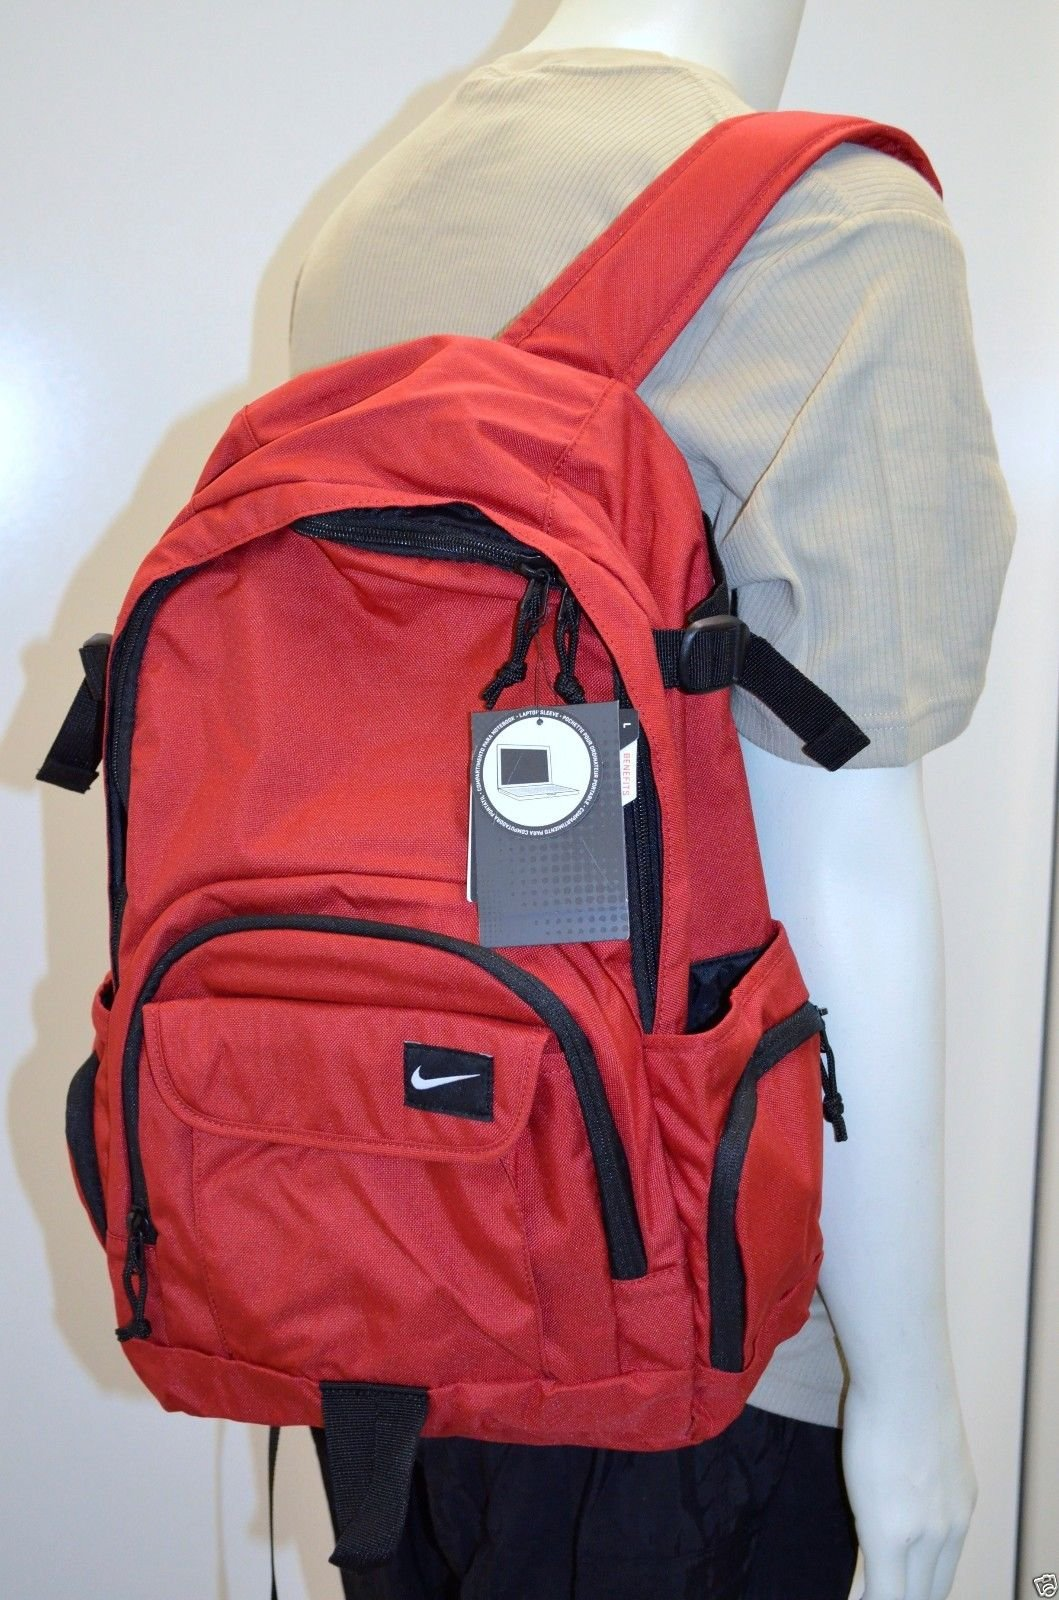 06cac68d6d Galleon - Nike All-Access Full Fare Backpack